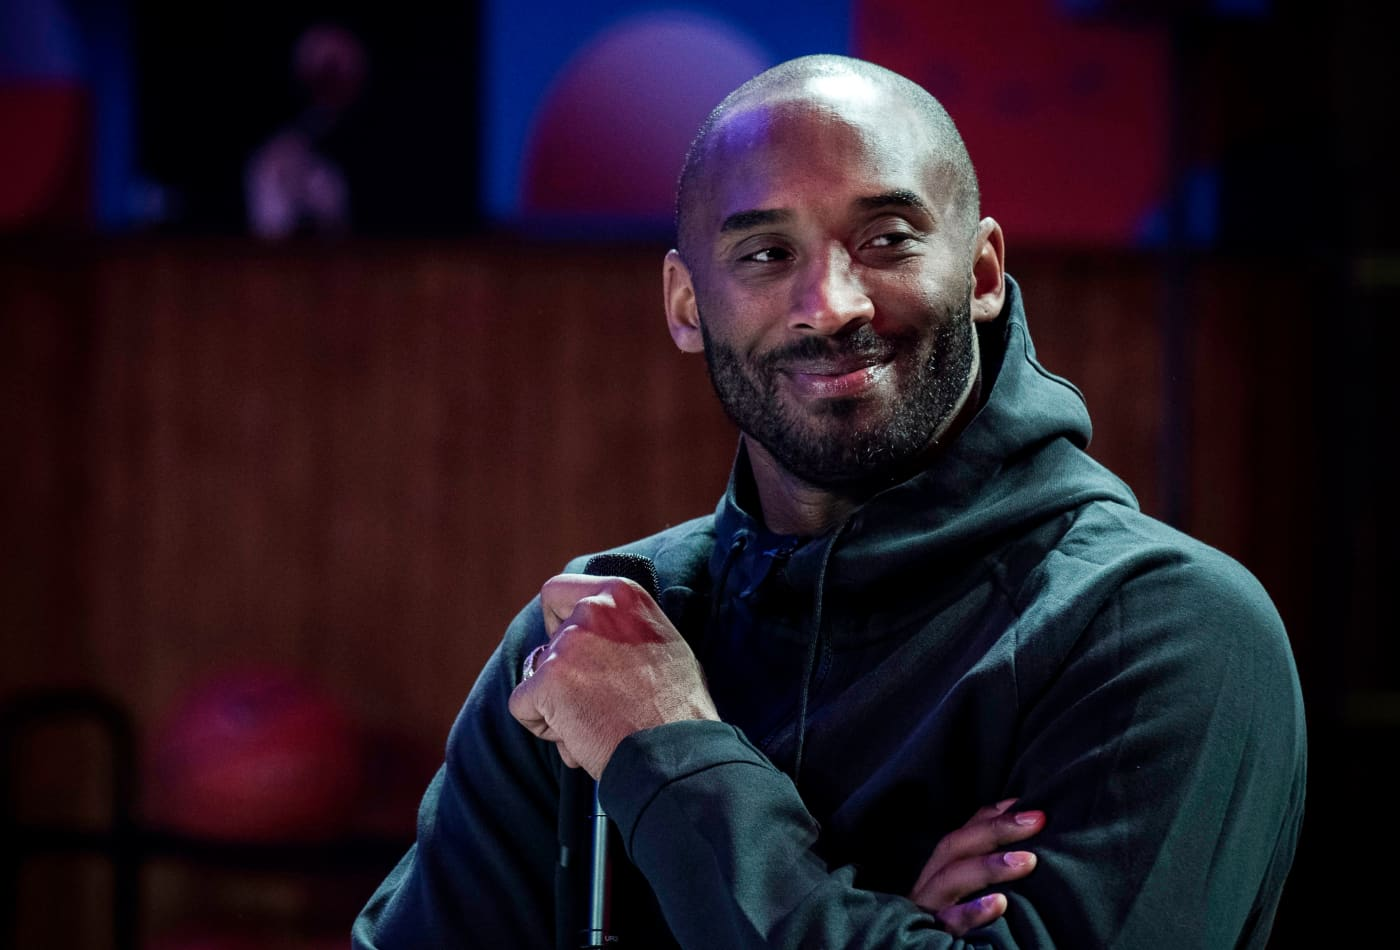 NBA superstar Kobe Bryant and his daughter Gianna killed in LA-area helicopter crash